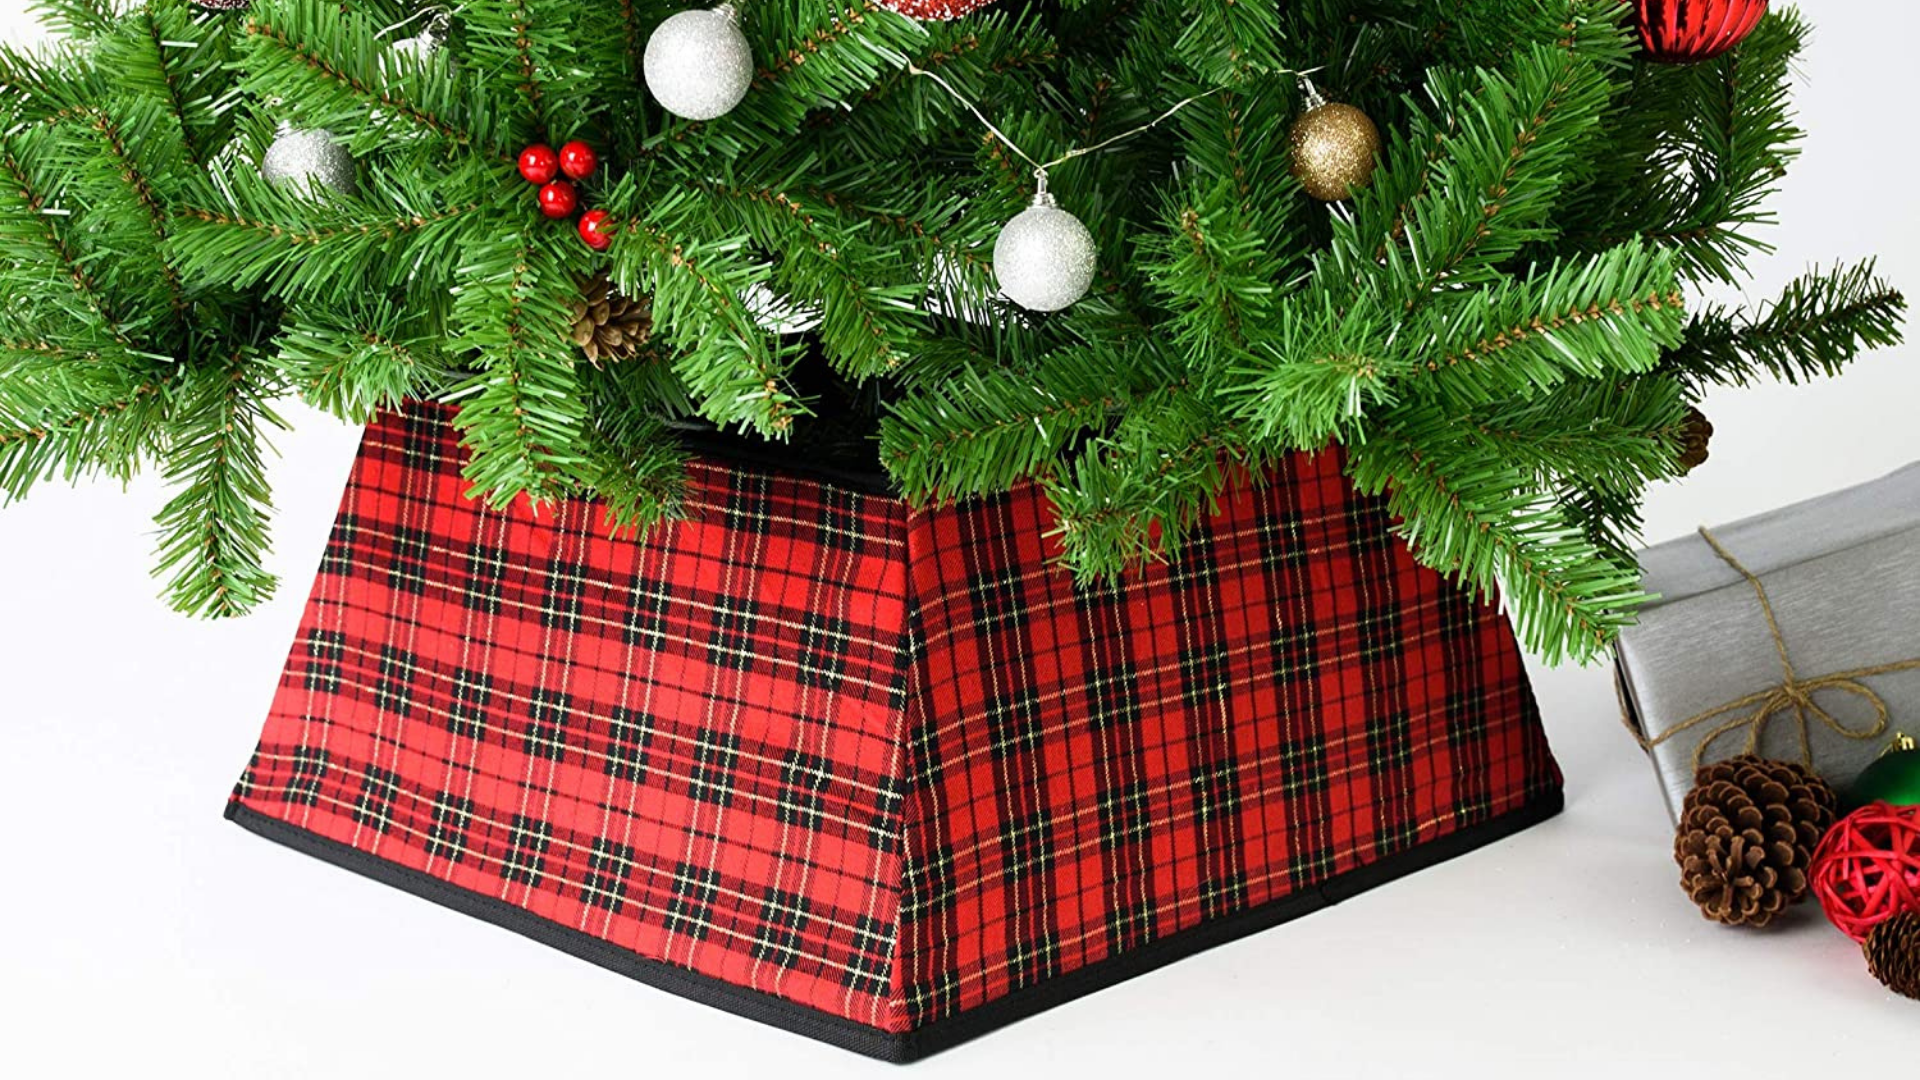 Tree collars are the new tree skirt—here are 20 to shop right now